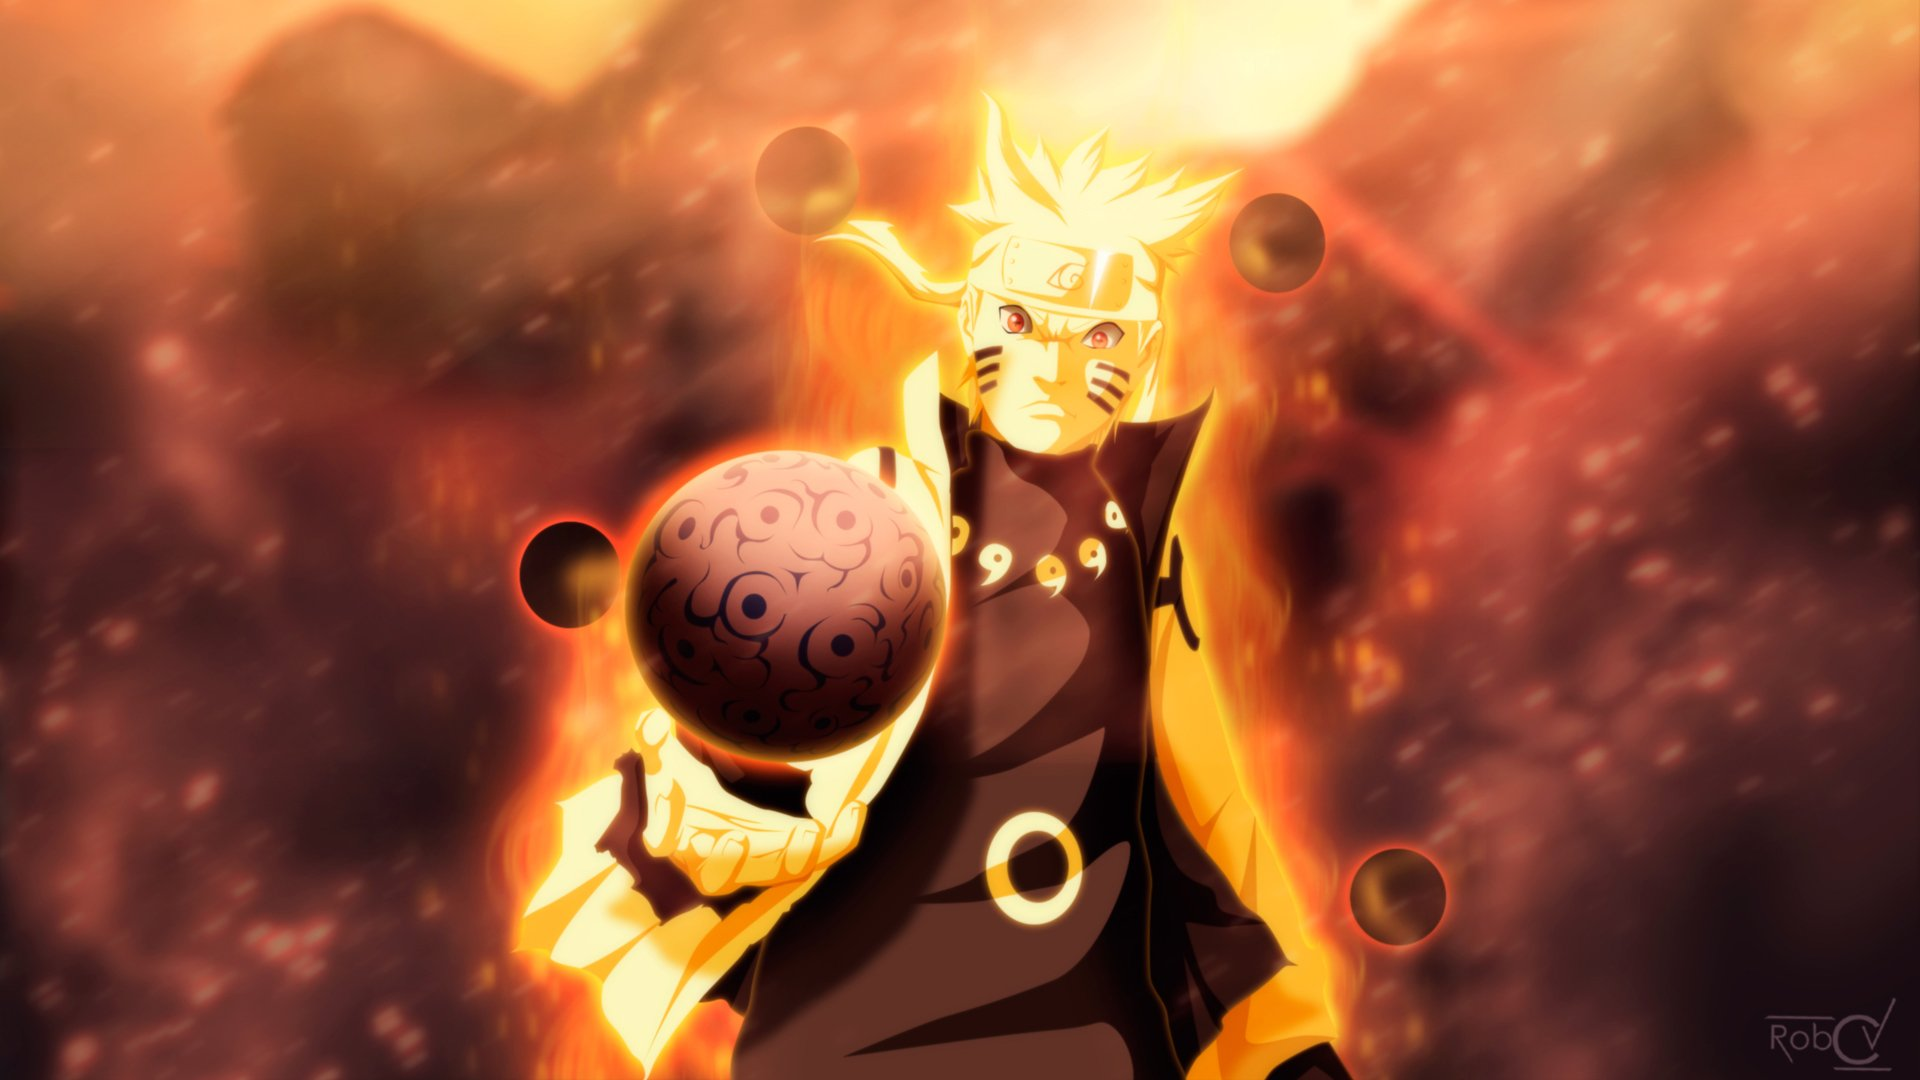 Naruto HD Wallpapers 1080p - WallpaperSafari